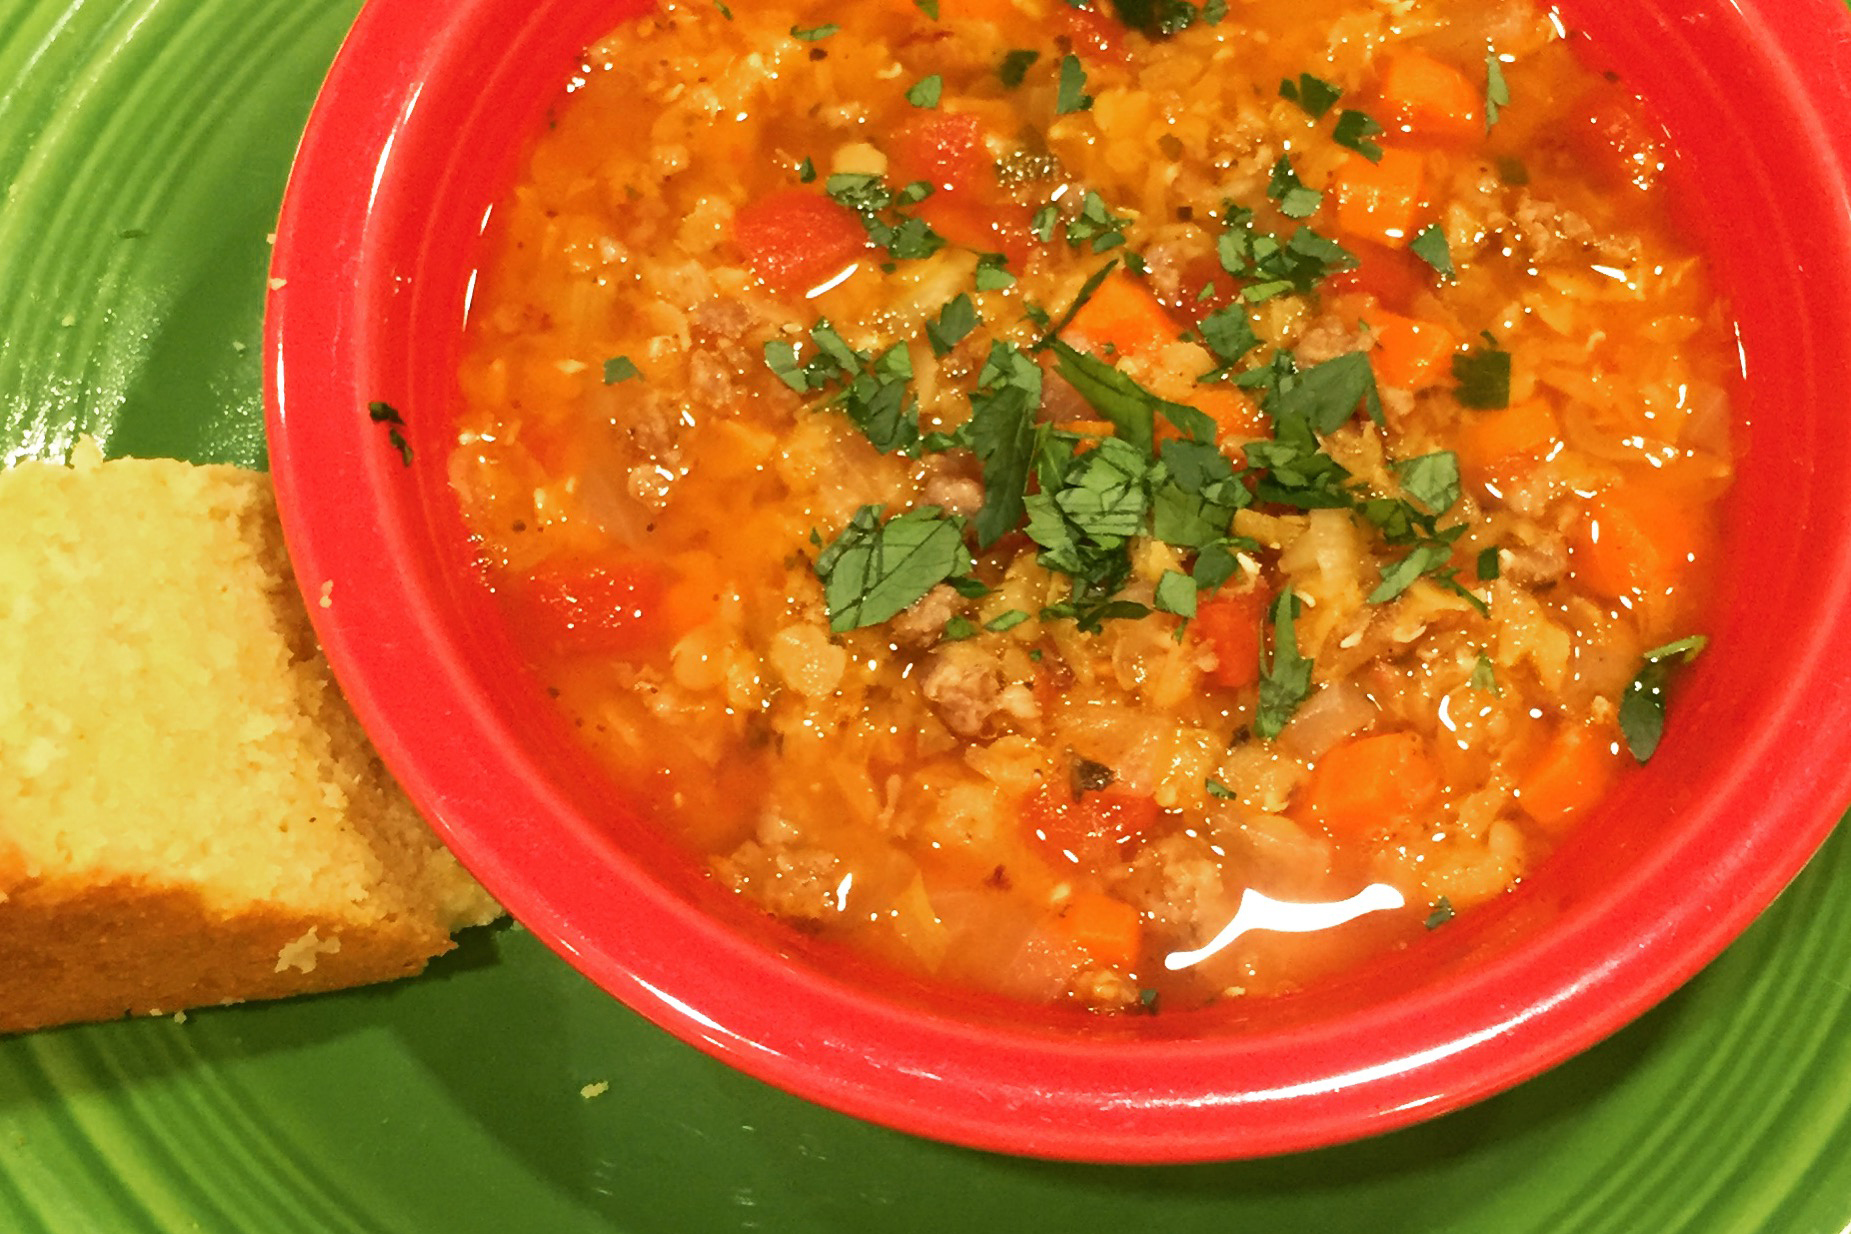 This soup is a one pot meal that comes together quite easily. Bake some corn bread while the soup cooks (Susan Mintert/Indiana Home Cooks)